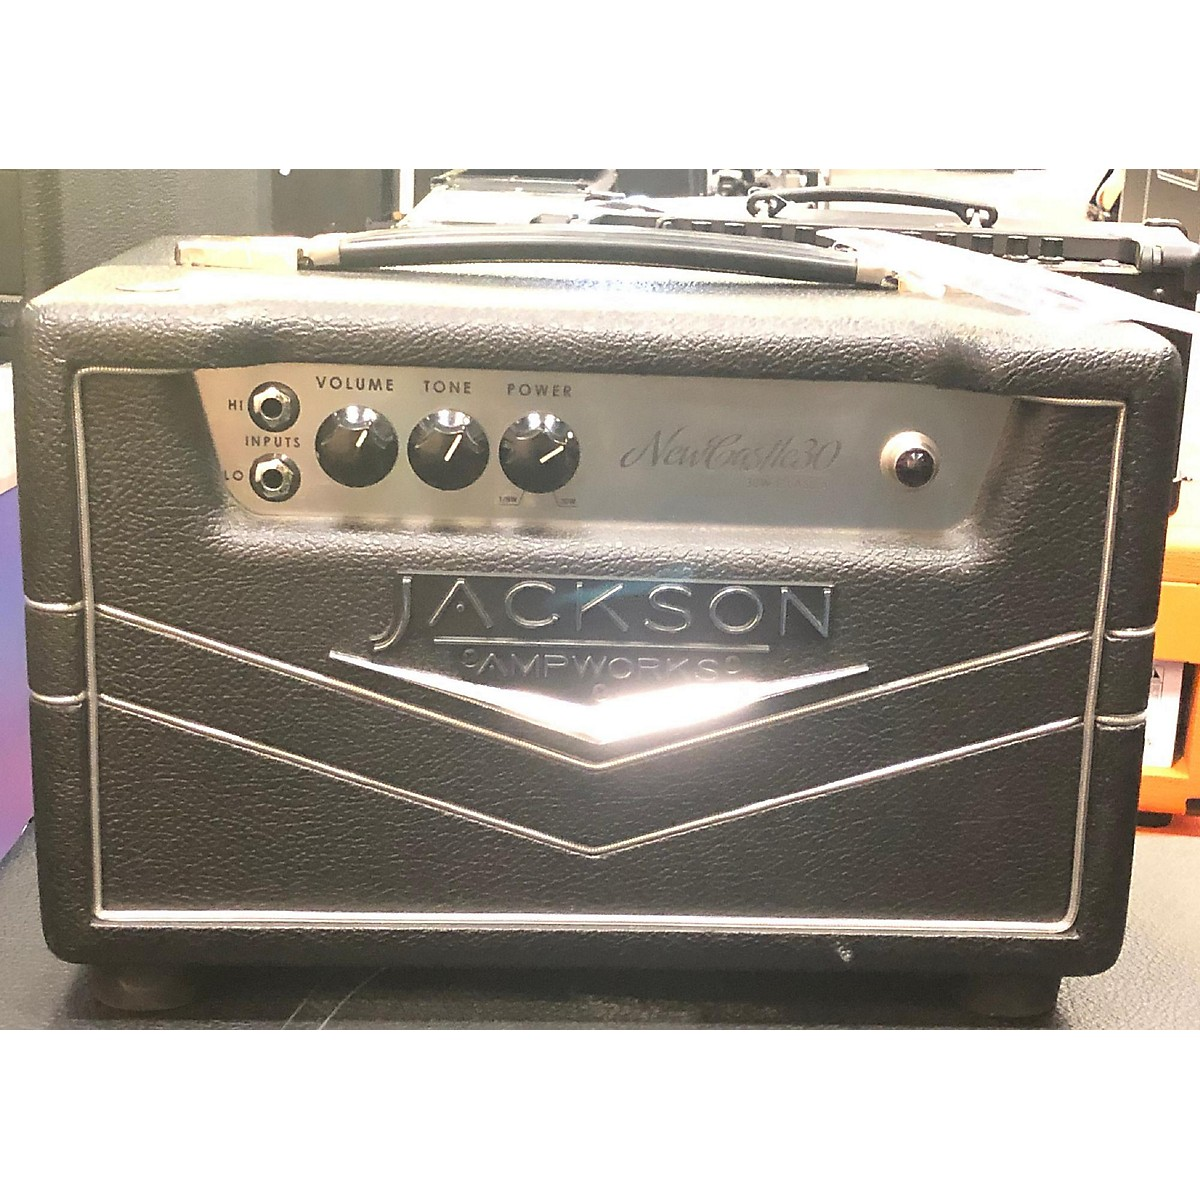 Jackson Ampworks Newcastle 30 30W CLASS A Solid State Guitar Amp Head